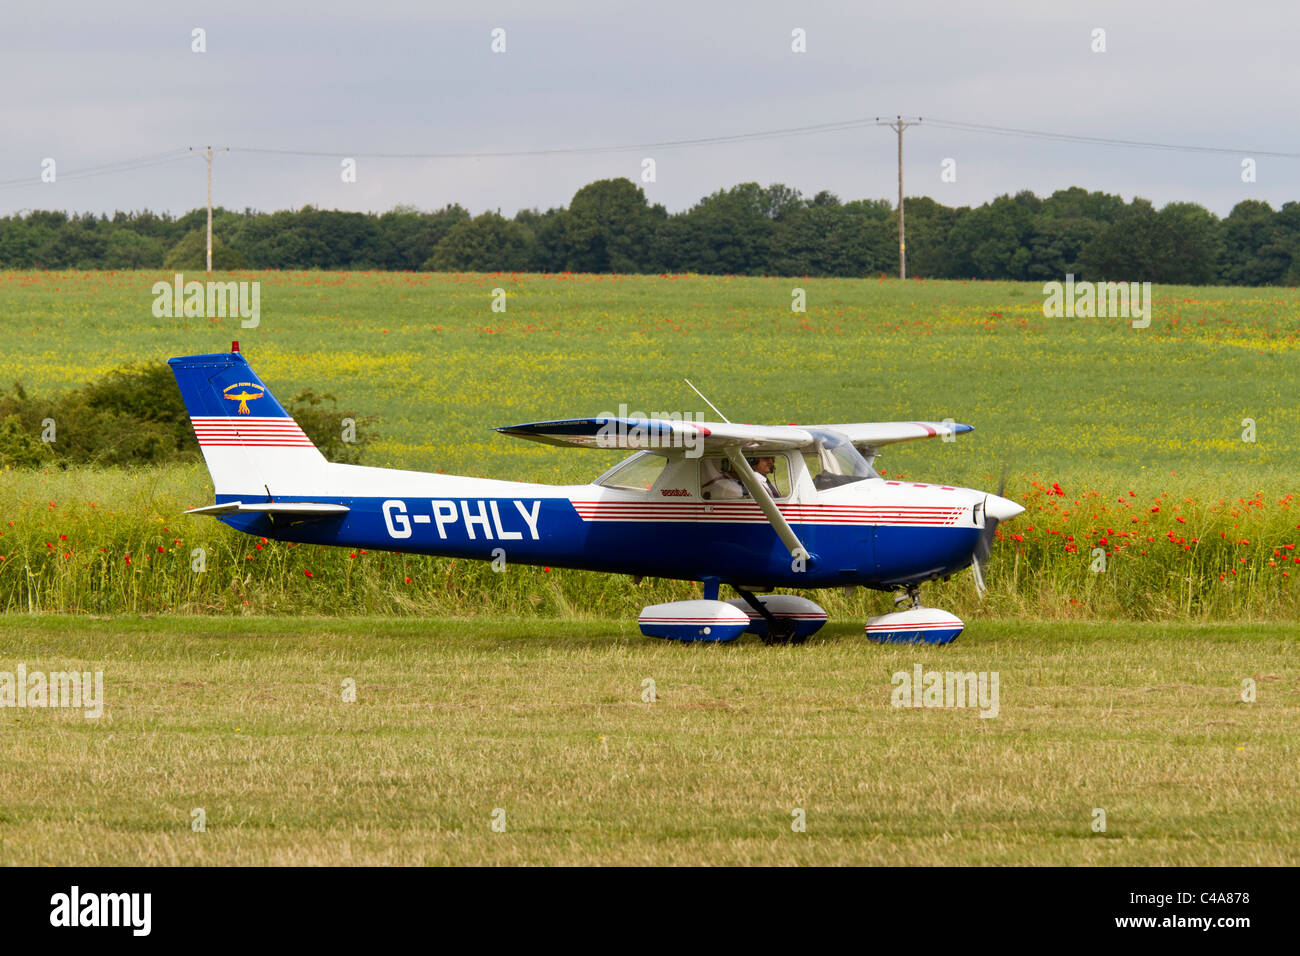 Reims Cessna 150 taxiing at Netherthorpe, South Yorkshire - Stock Image